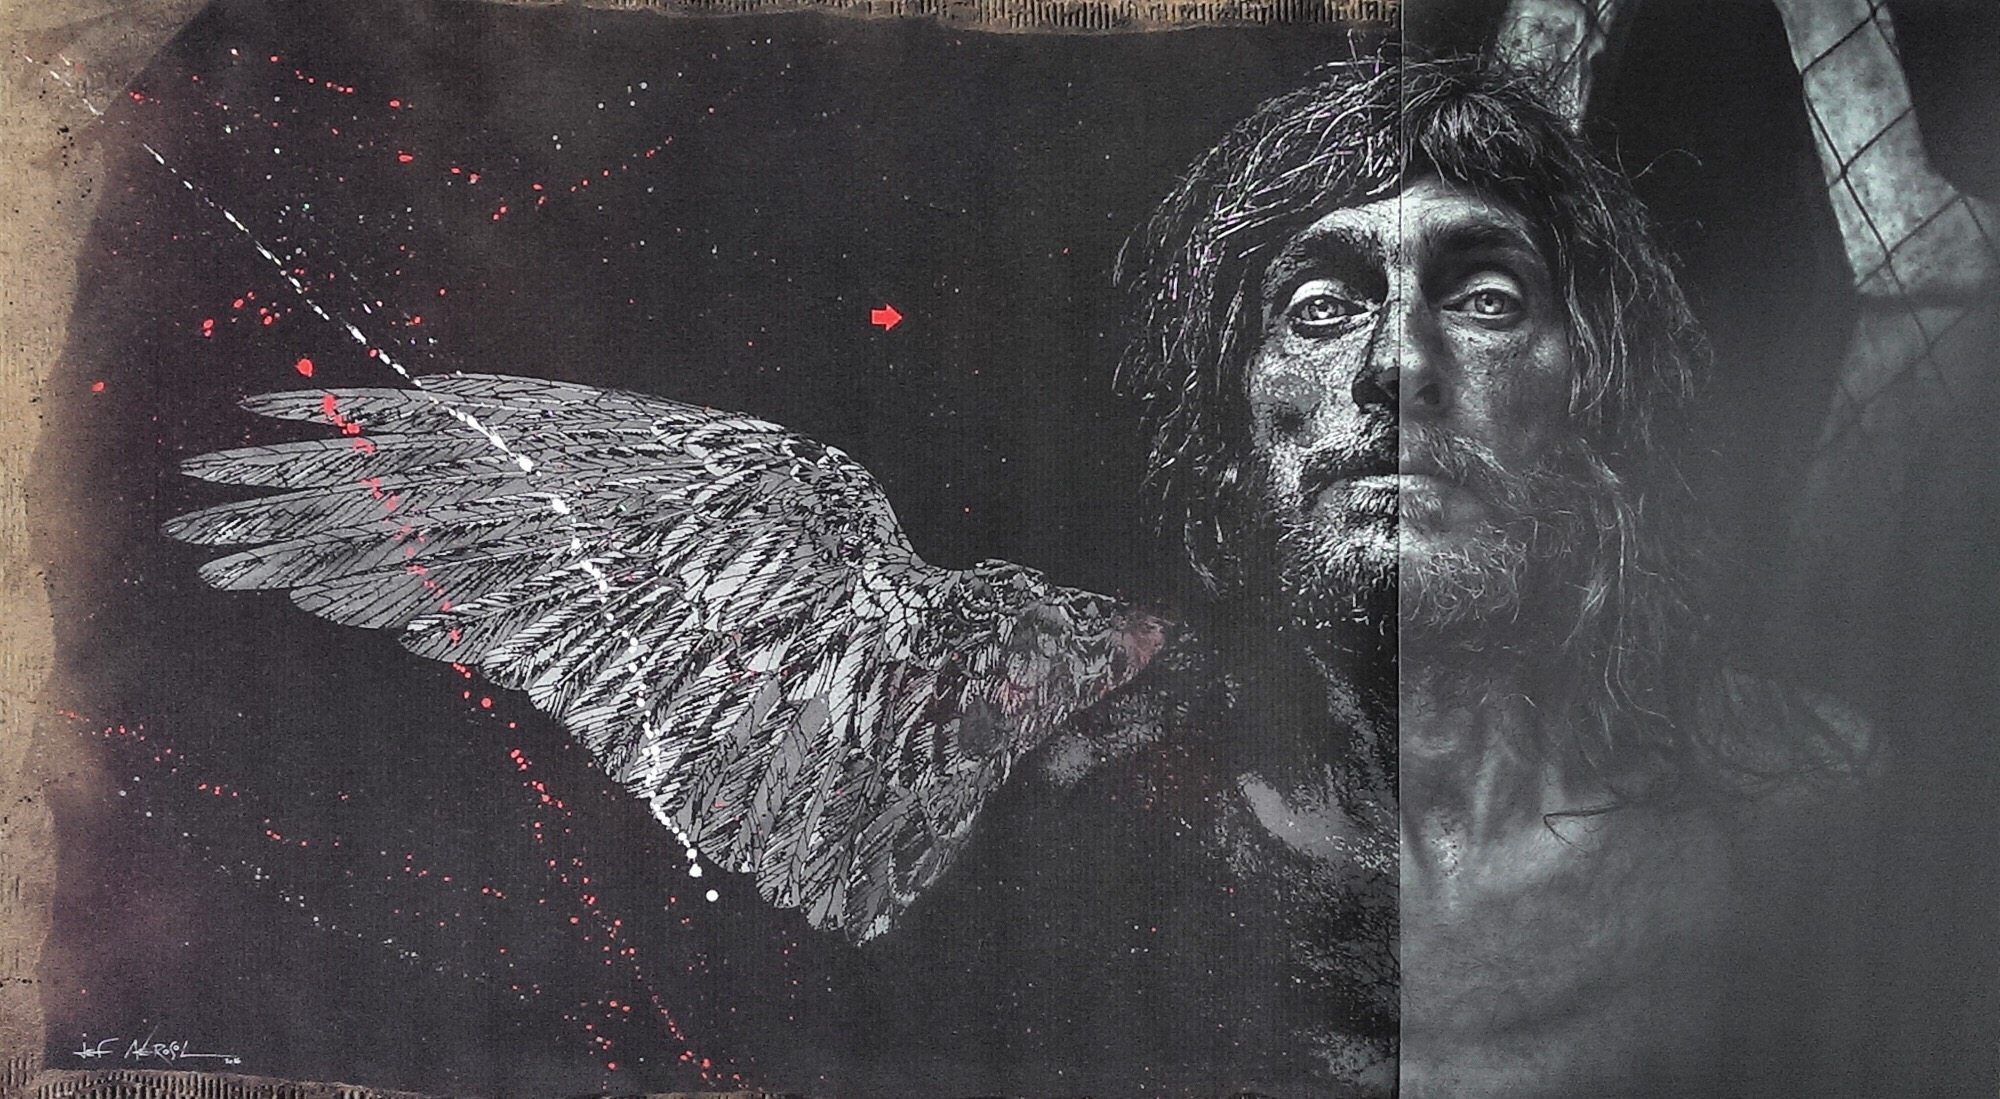 Lee Jeffries Collaborates with Famed Artist to Reveal Hidden Symbols in His Portraits